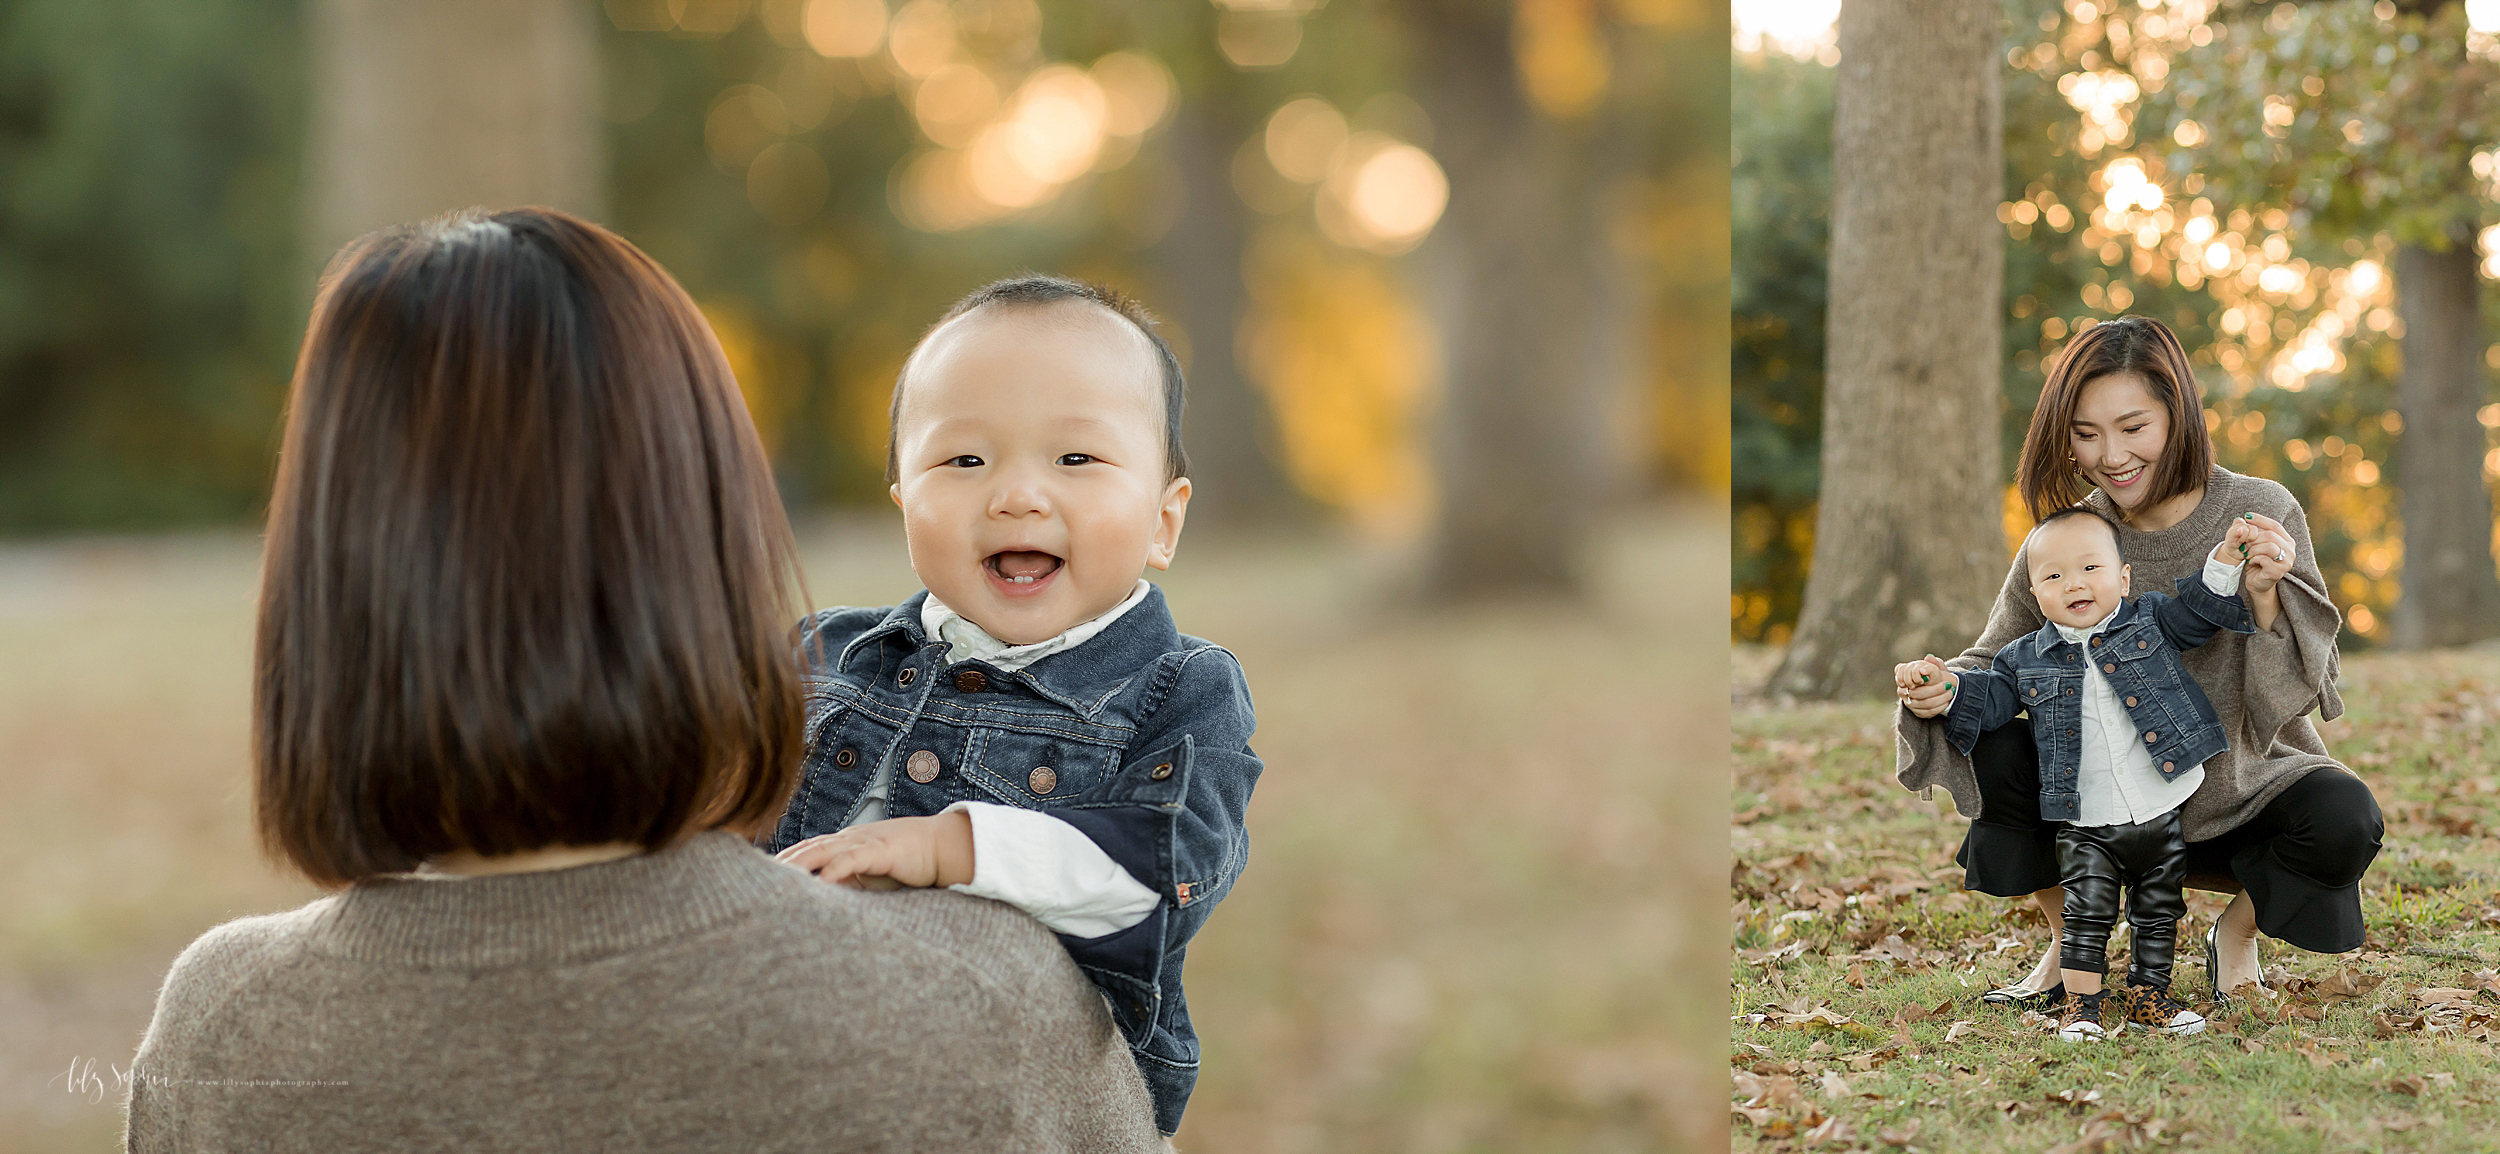 atlanta-buckhead-brookhaven-decatur-lily-sophia-photography--photographer-portraits-grant-park-intown-park-sunset-first-birthday-cake-smash-one-year-old-outdoors-cool-asian-american-family_0086.jpg